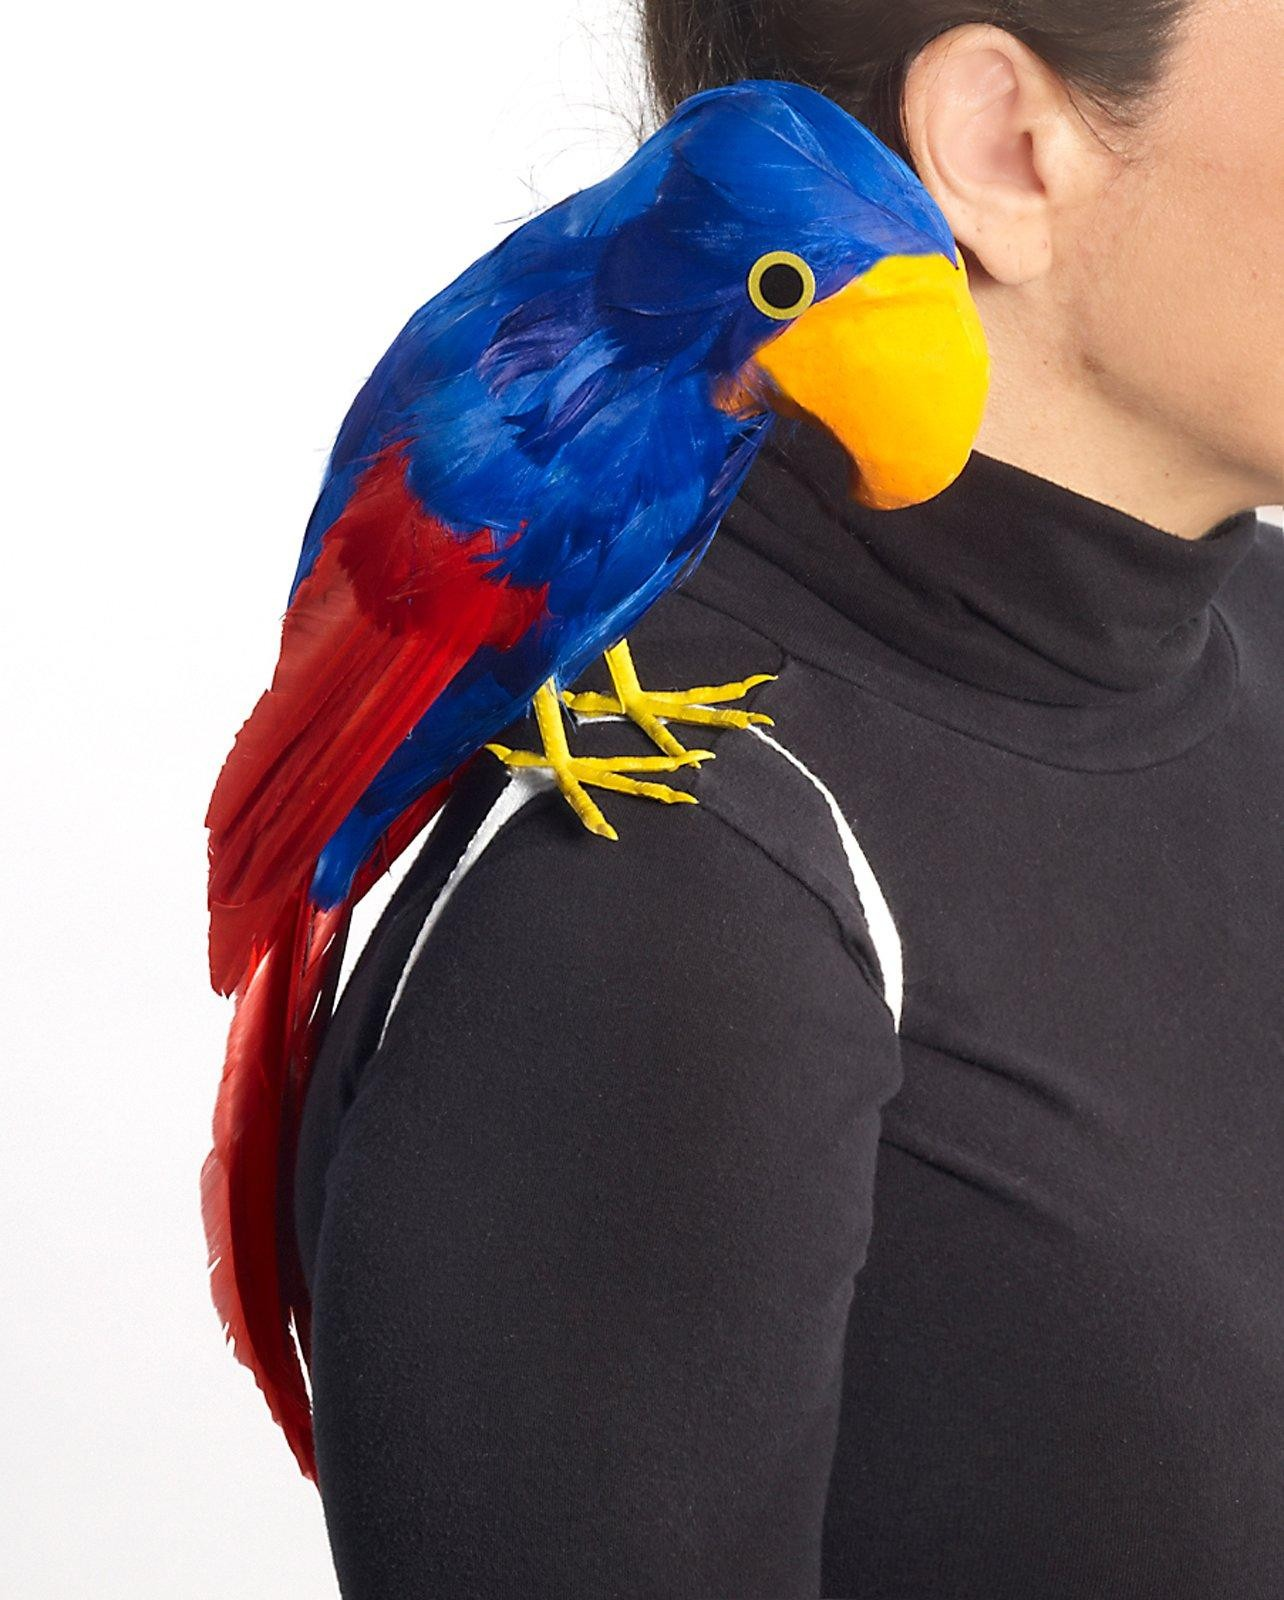 Adult parrot costume was specially